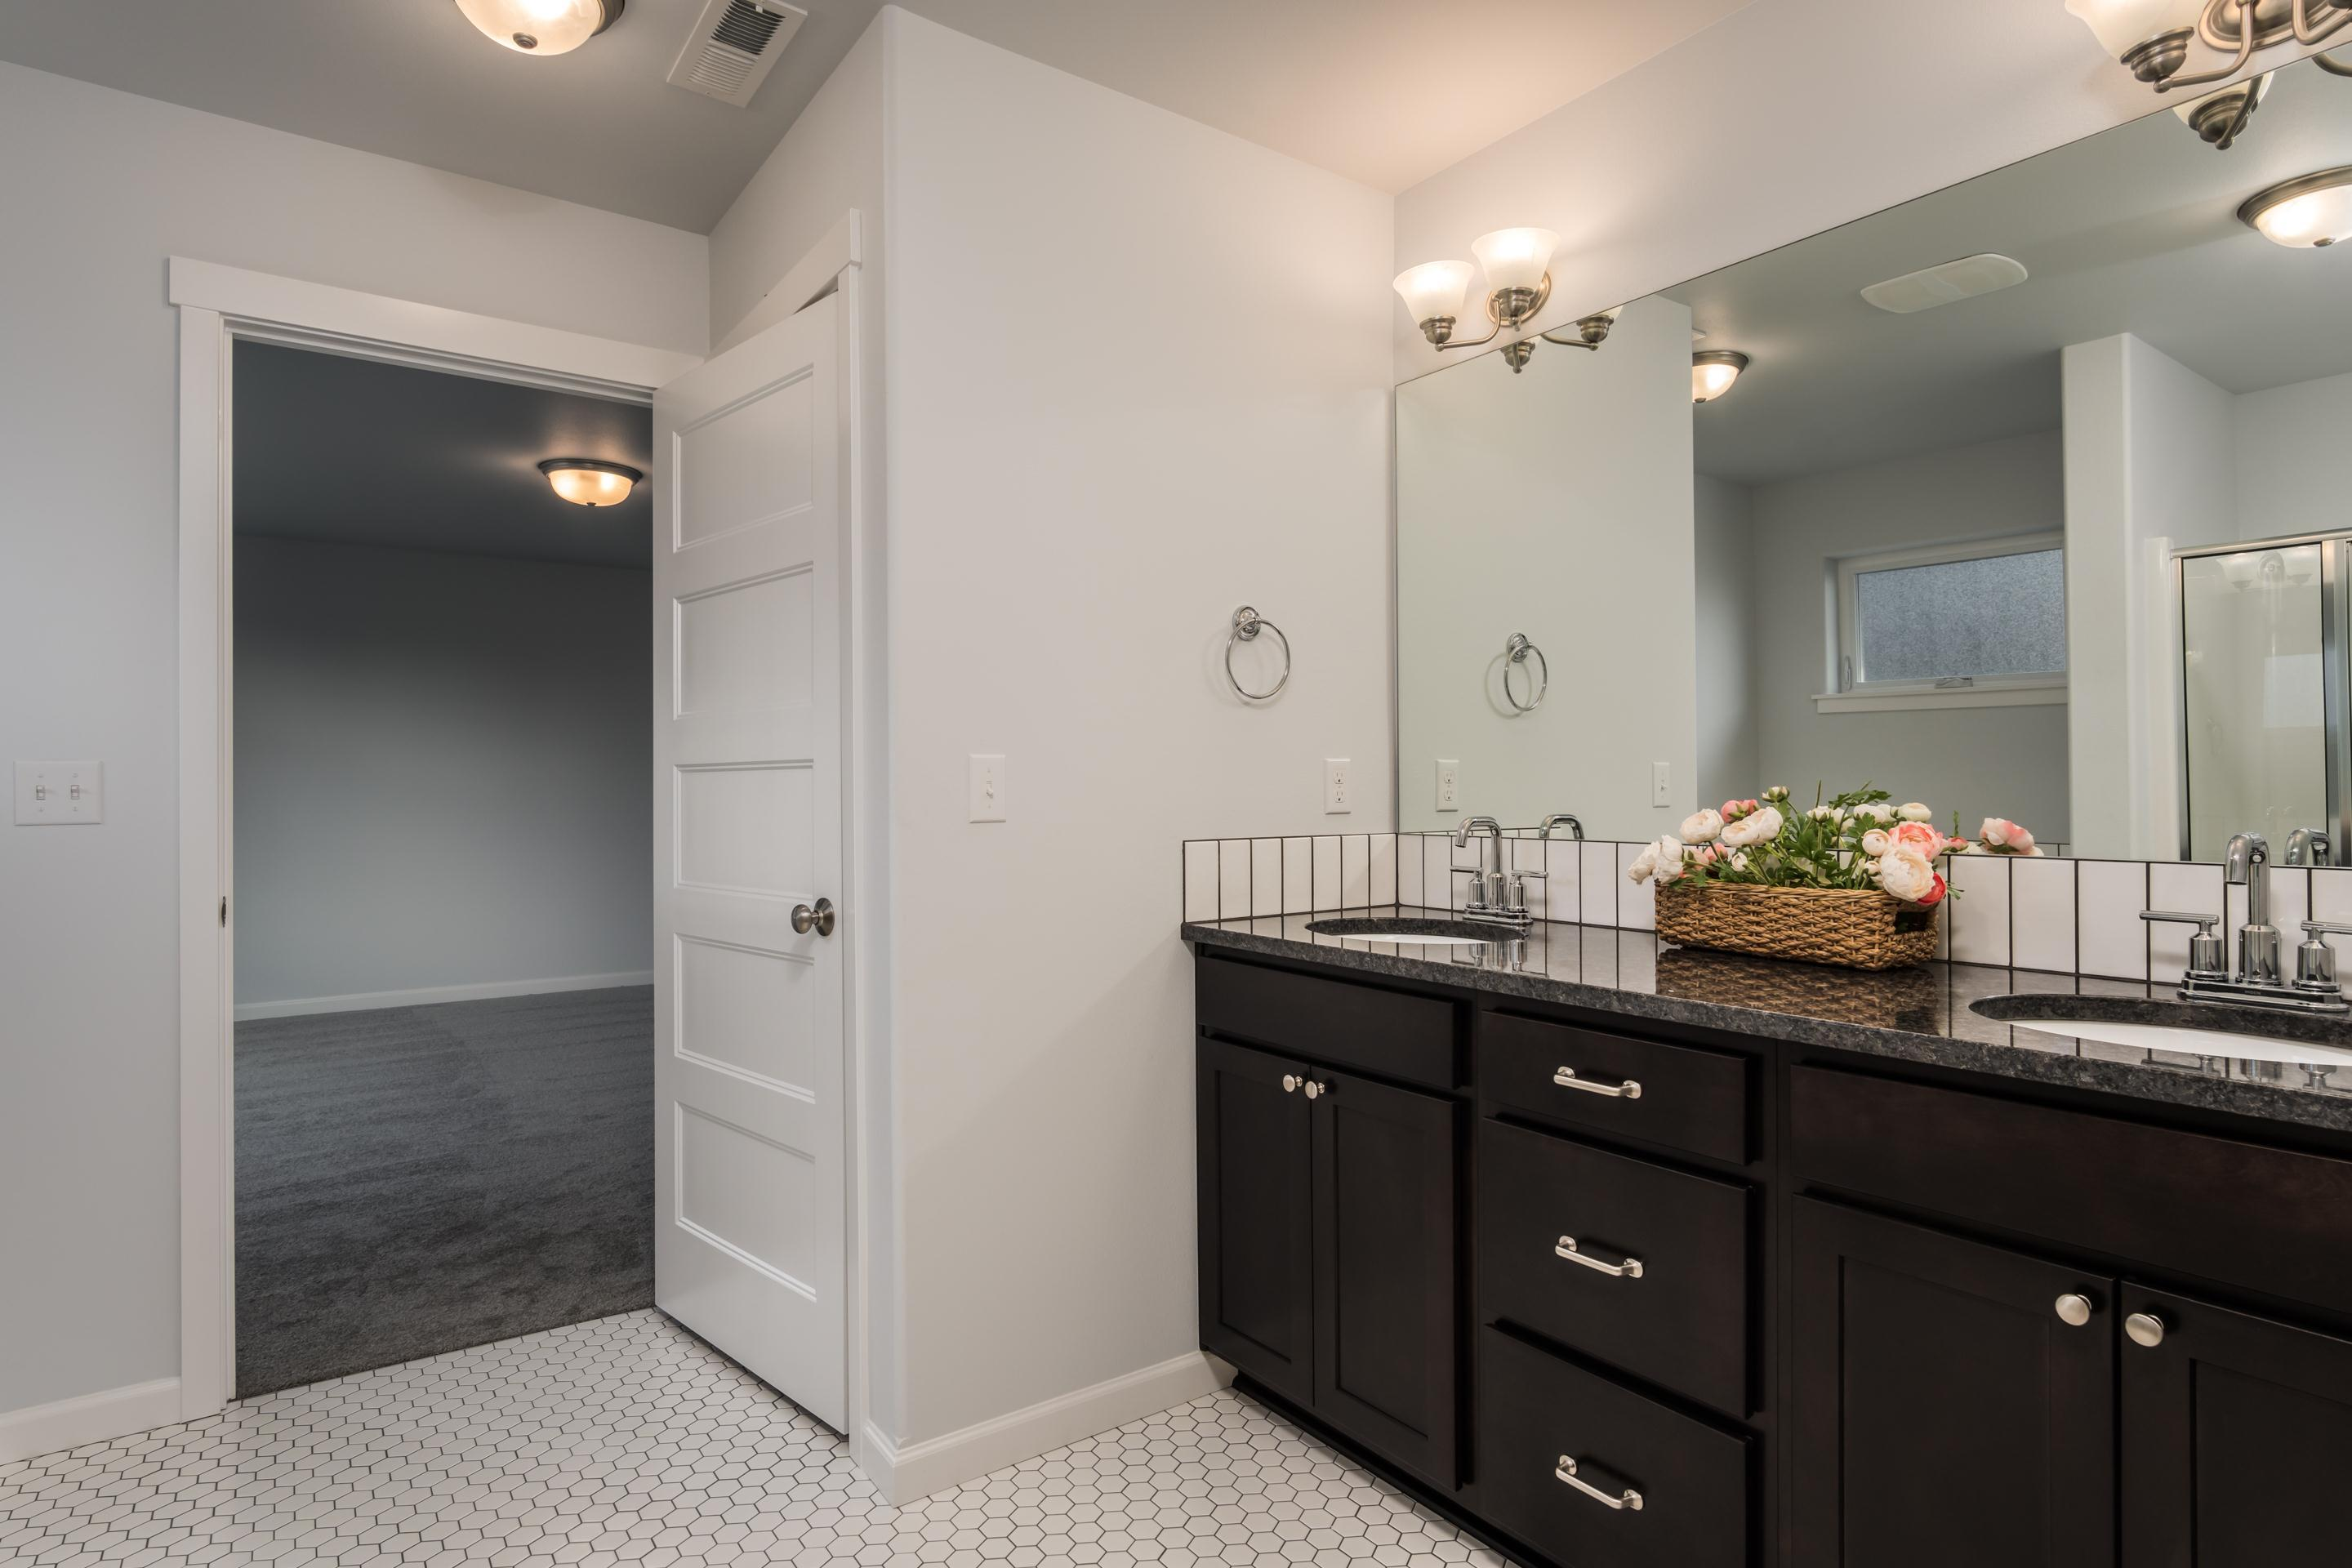 Bathroom featured in the CC Padilla By Landed Gentry Homes in Bellingham, WA